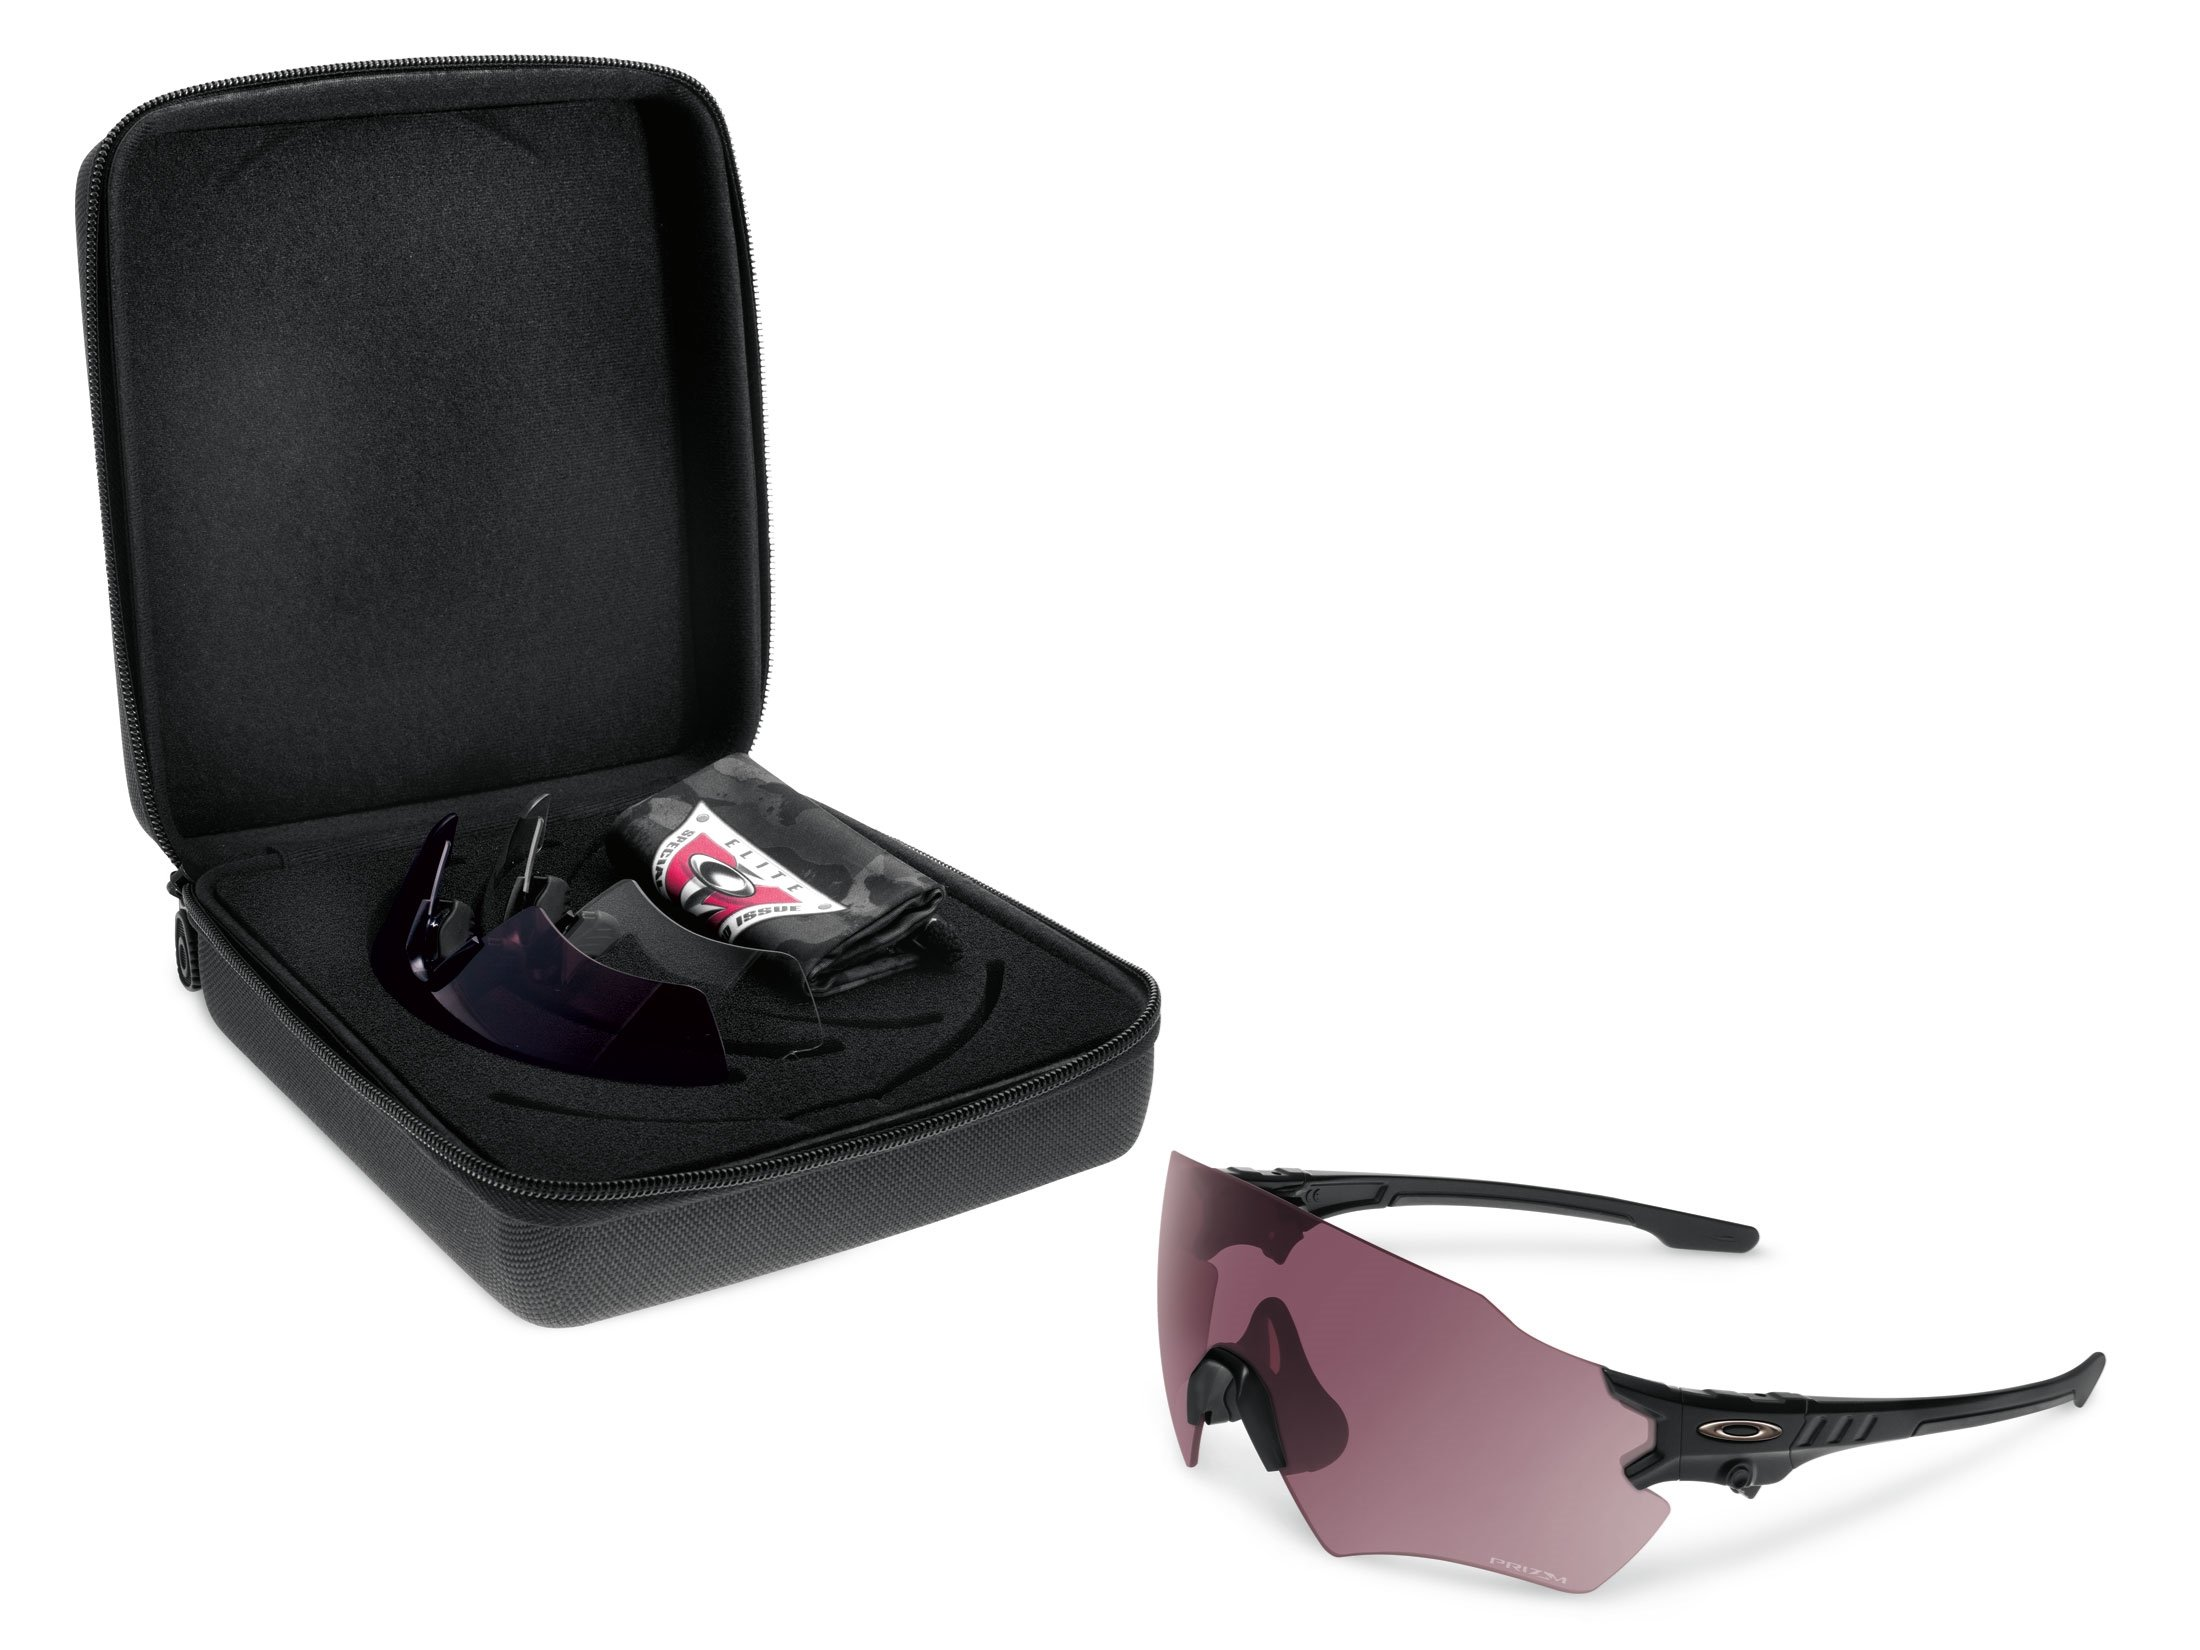 Oakley Si Tombstone Reap PRIZM w/ 3 Lens Array (Clear, Tr22, Tr45) Shooting Glasses, Matte Black by Oakley